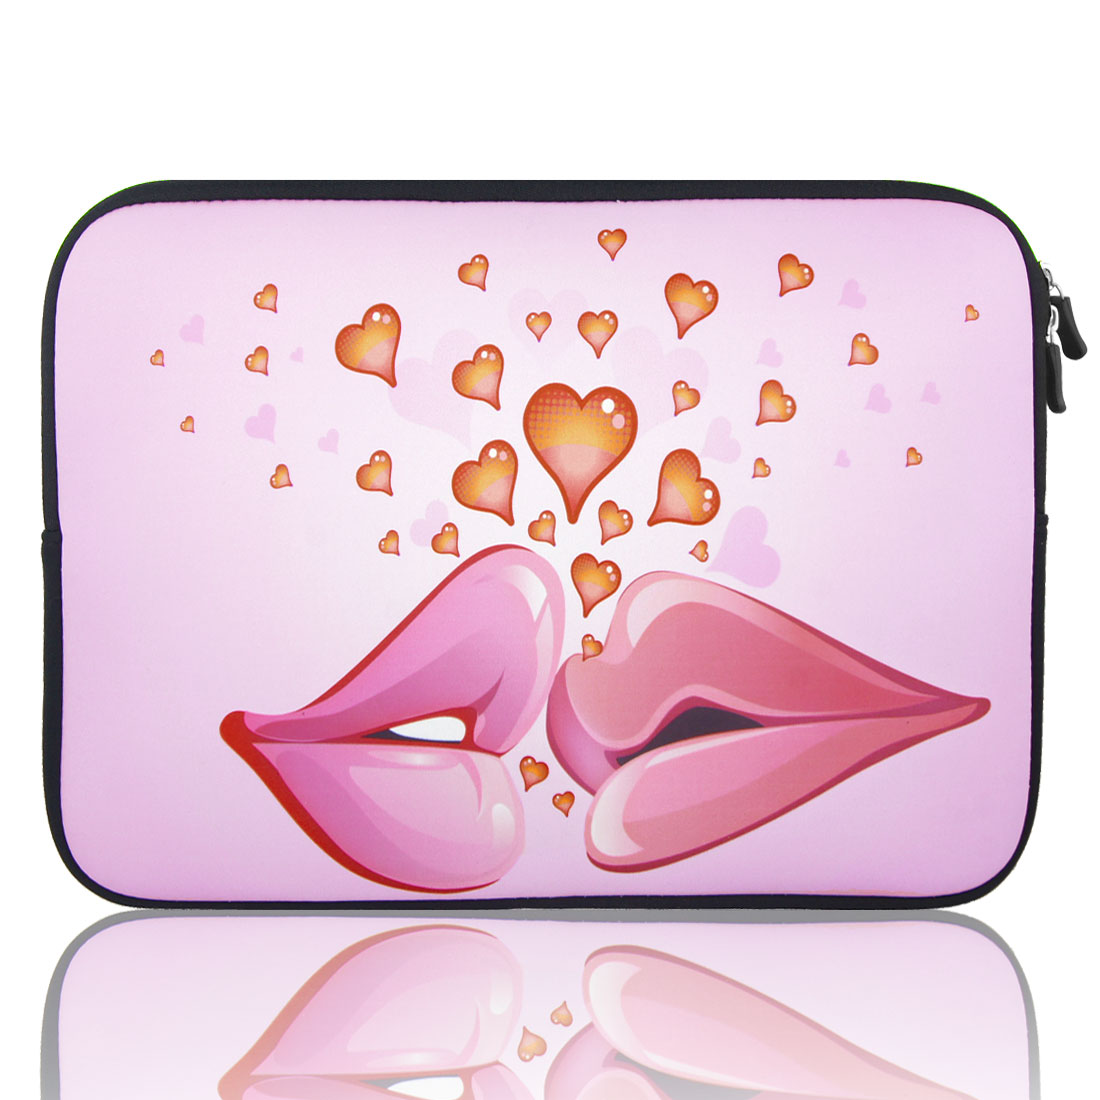 "Heart 10"" 10.1"" 10.2"" Neoprene Notebook Laptop Sleeve Bag Case for Asus"